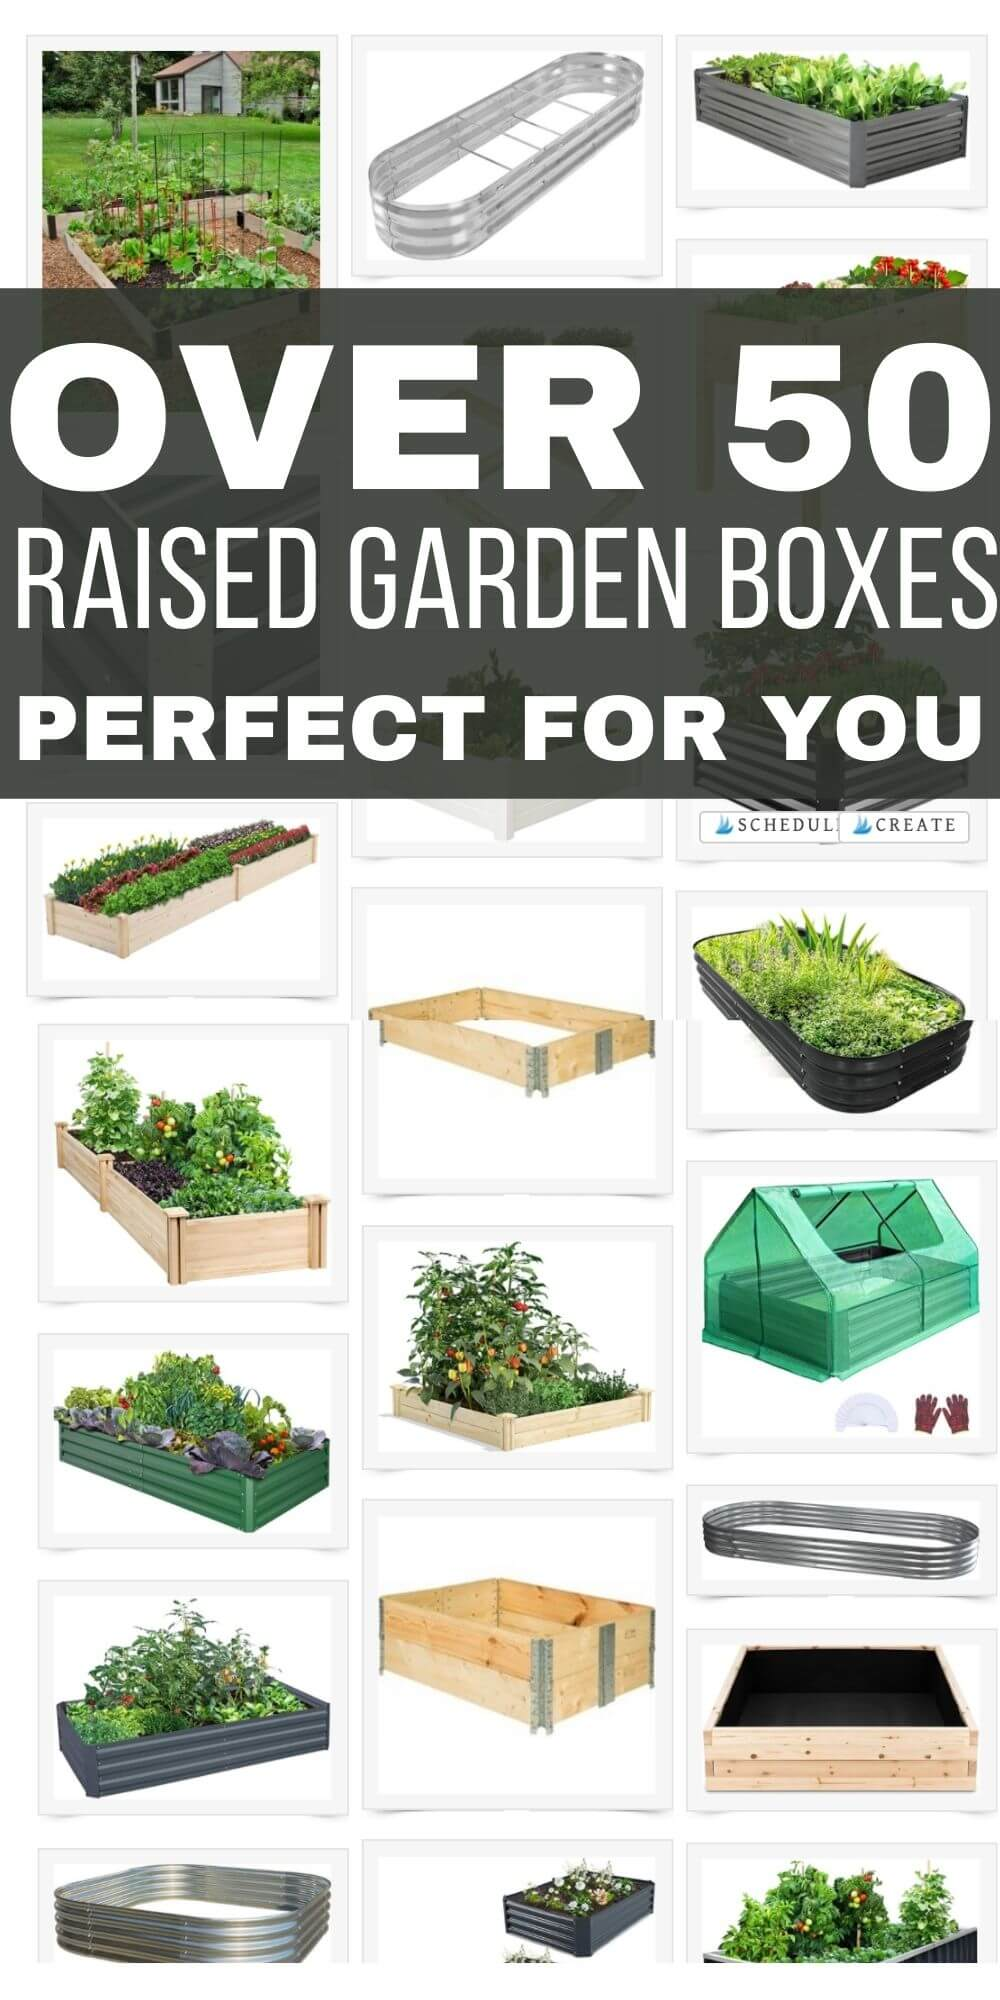 Want to start your own garden? This post has tons of gardening info including over 50 raised garden boxes perfect for your needs.